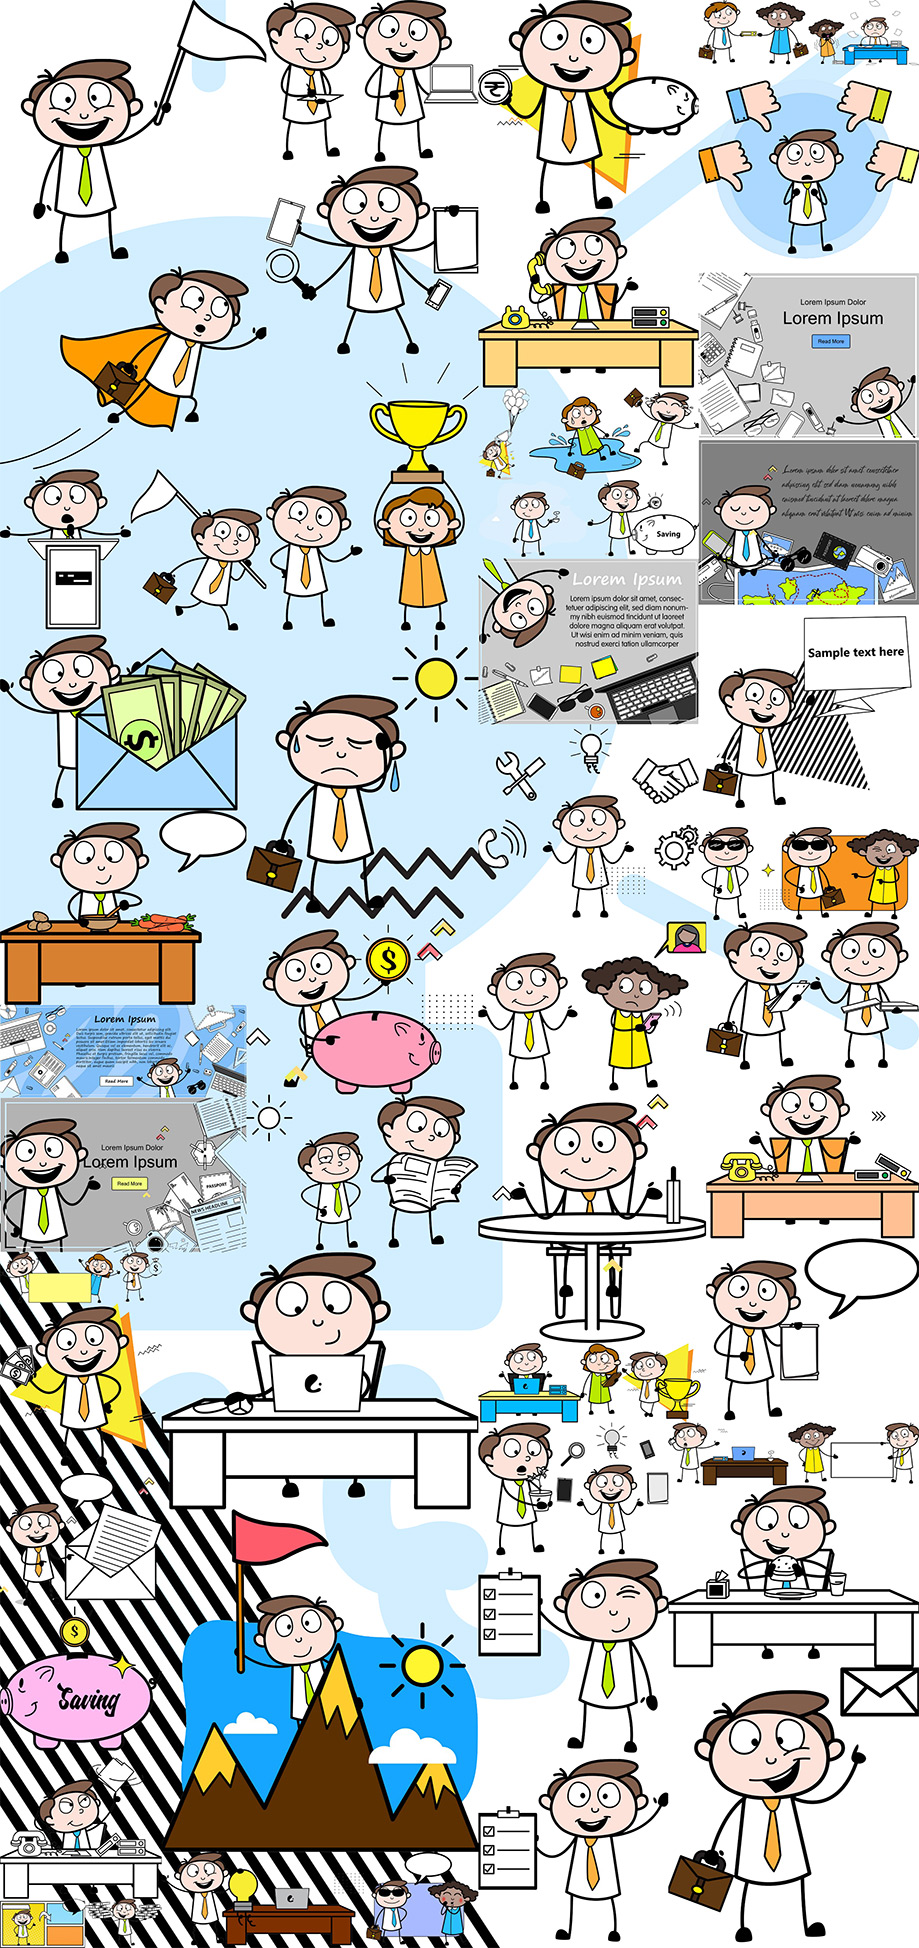 Businessman Vector Cartoon Series Pack - Royalty Free - Easy To Use